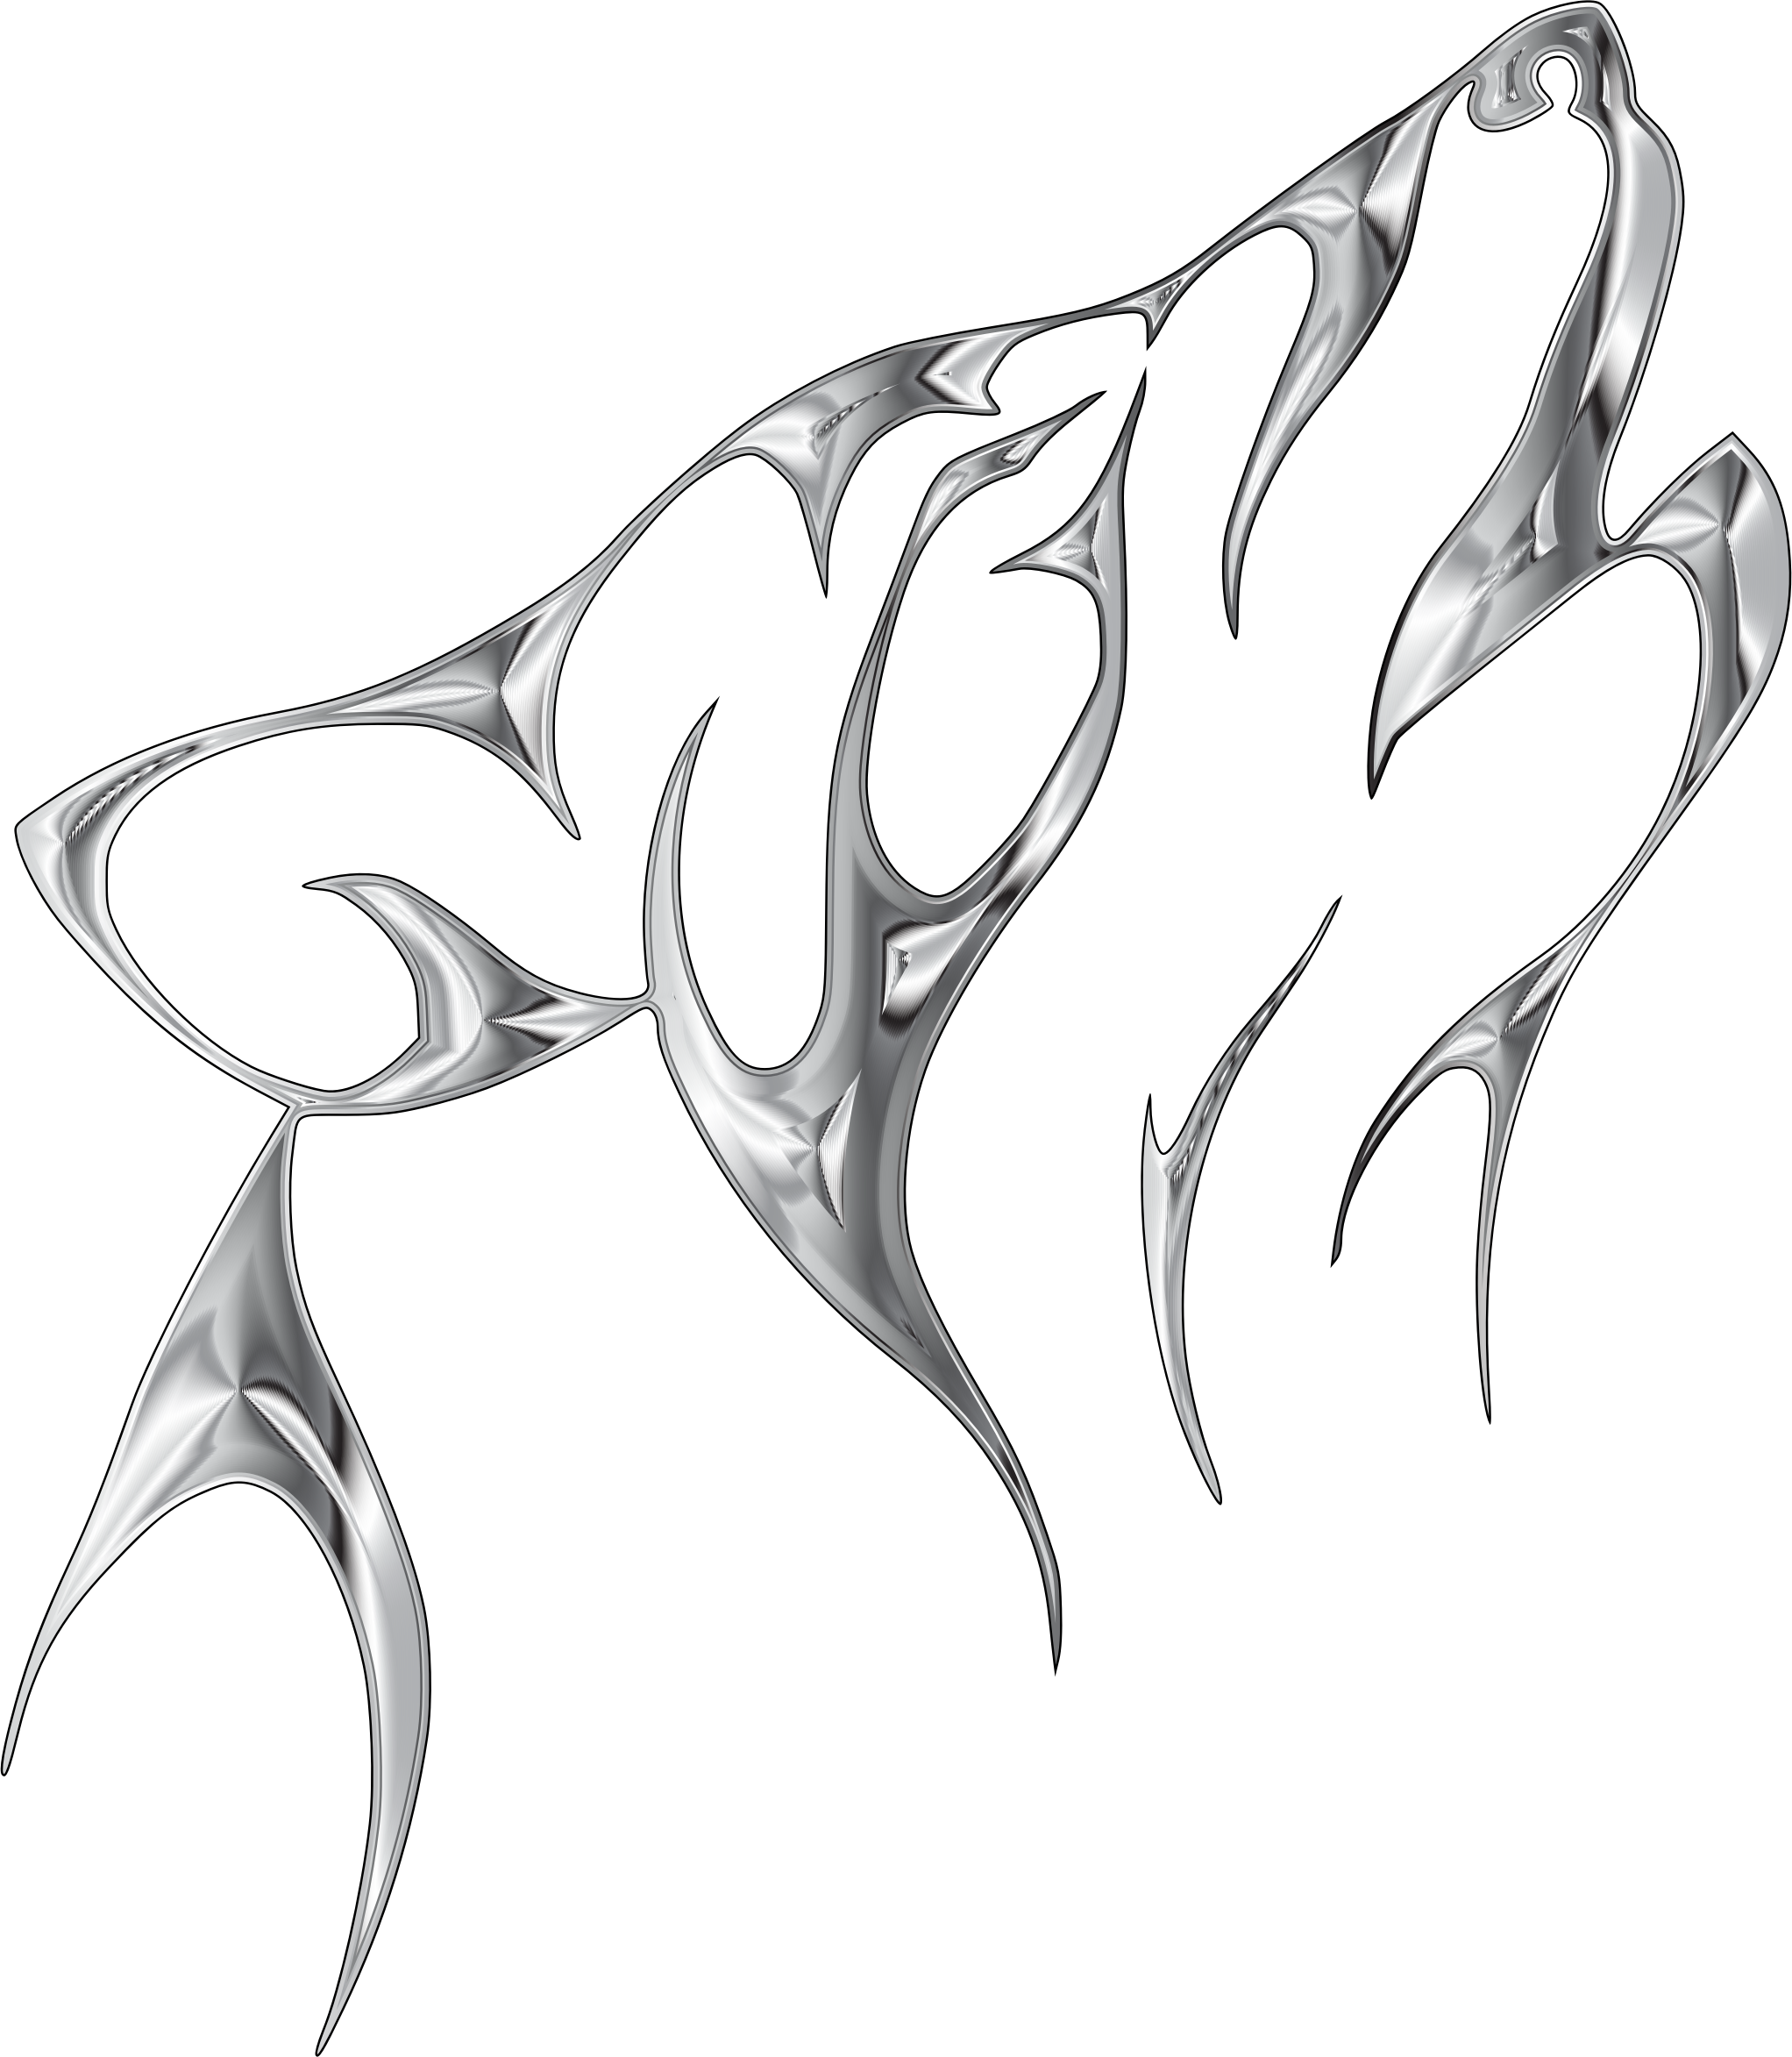 Wolves clipart abstract, Wolves abstract Transparent FREE.